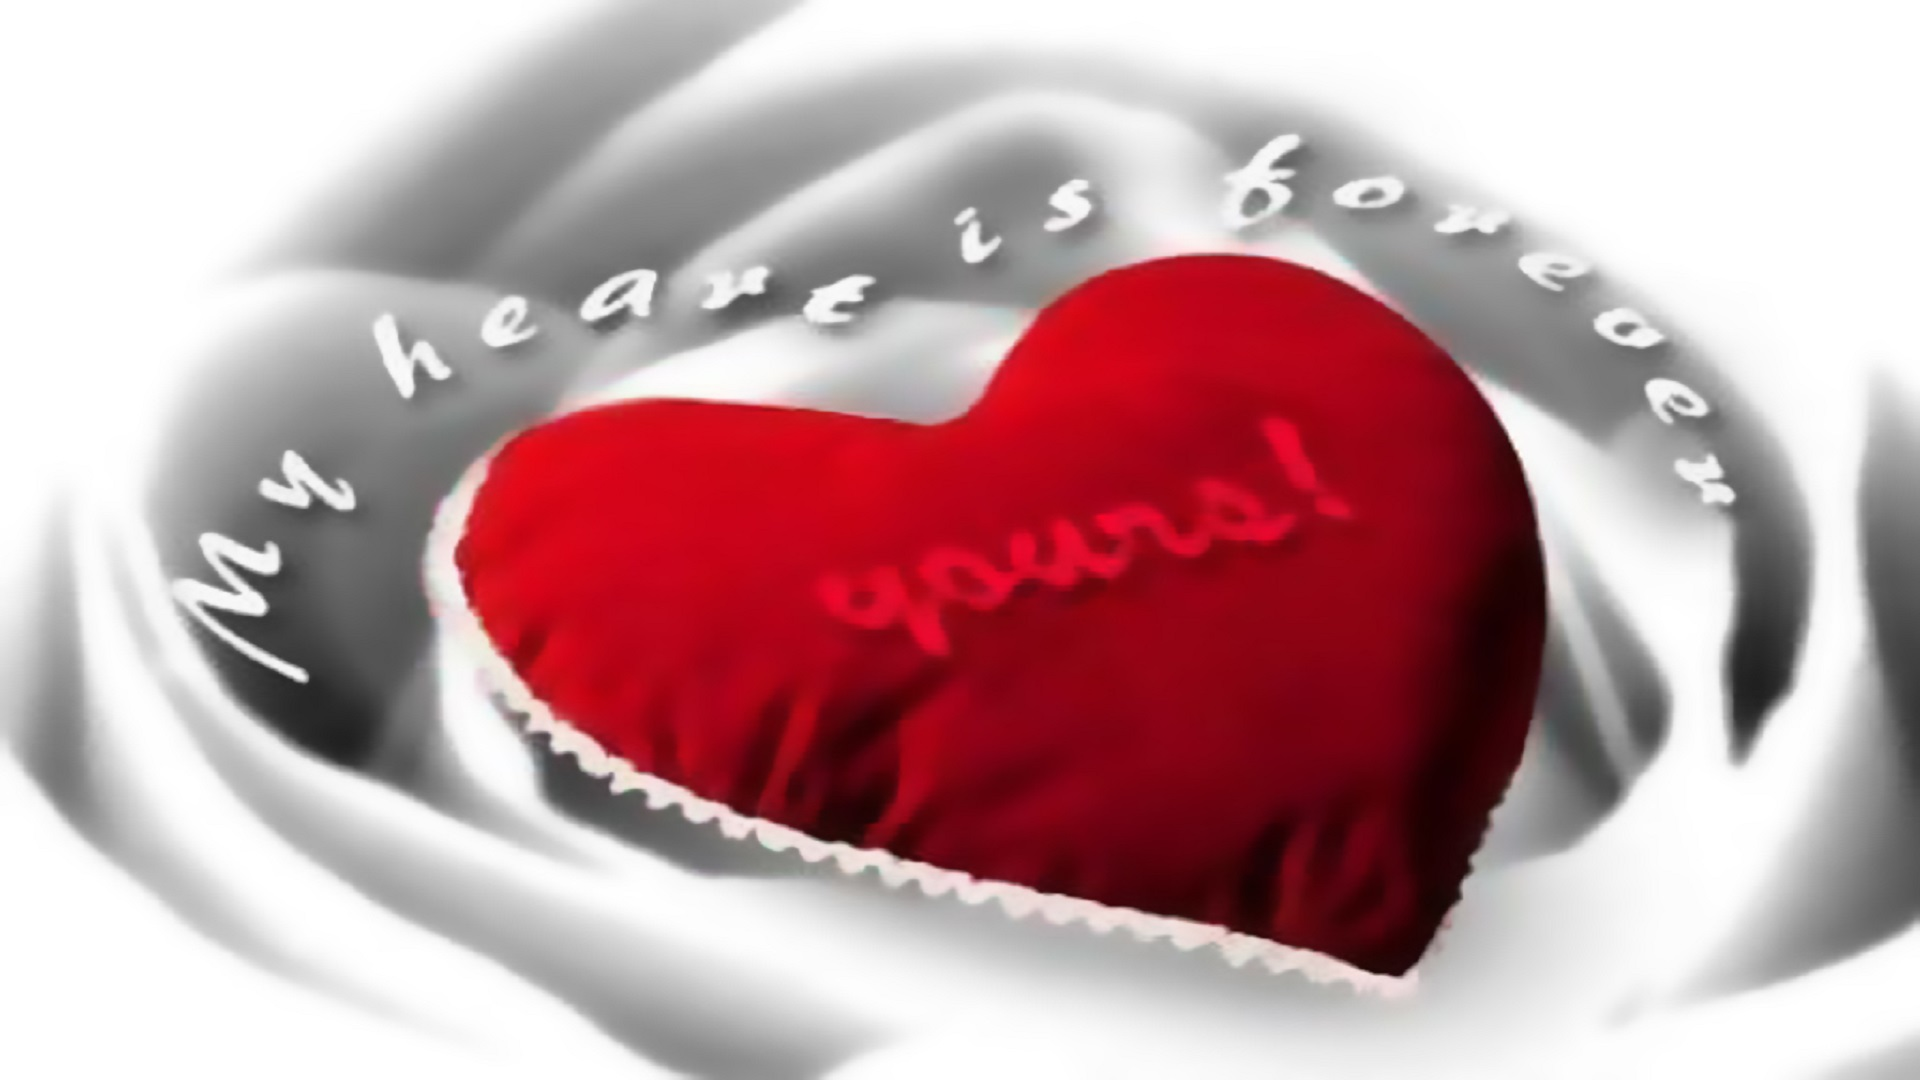 Amzaing Love Forever Red Heart Wallpaper